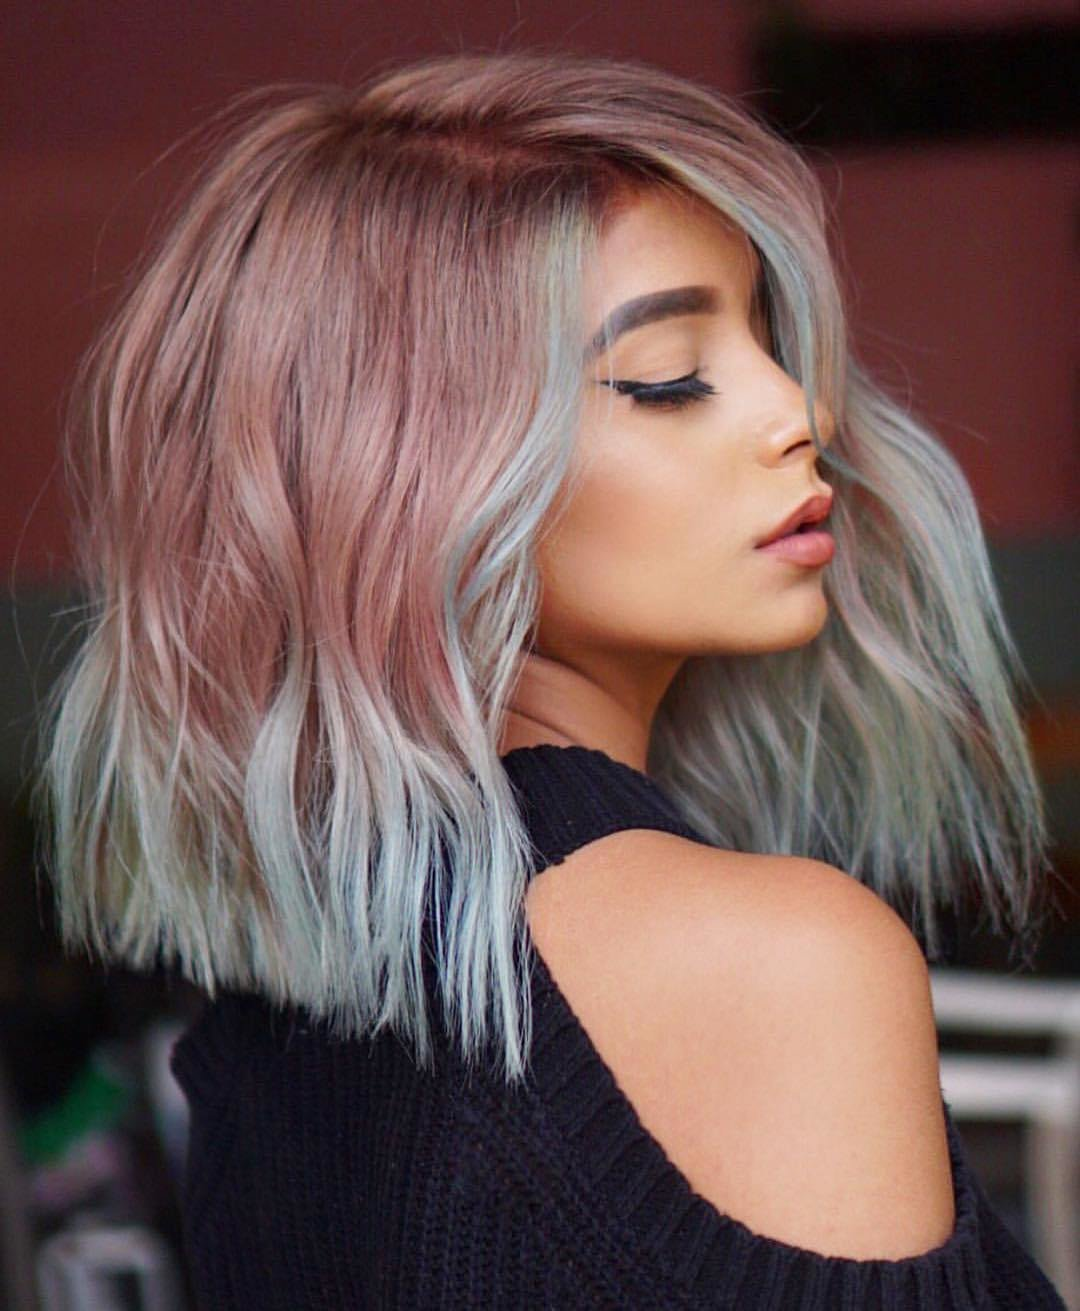 New 10 Stylish Lob Hairstyle Ideas Best Shoulder Length Hair Ideas With Pictures